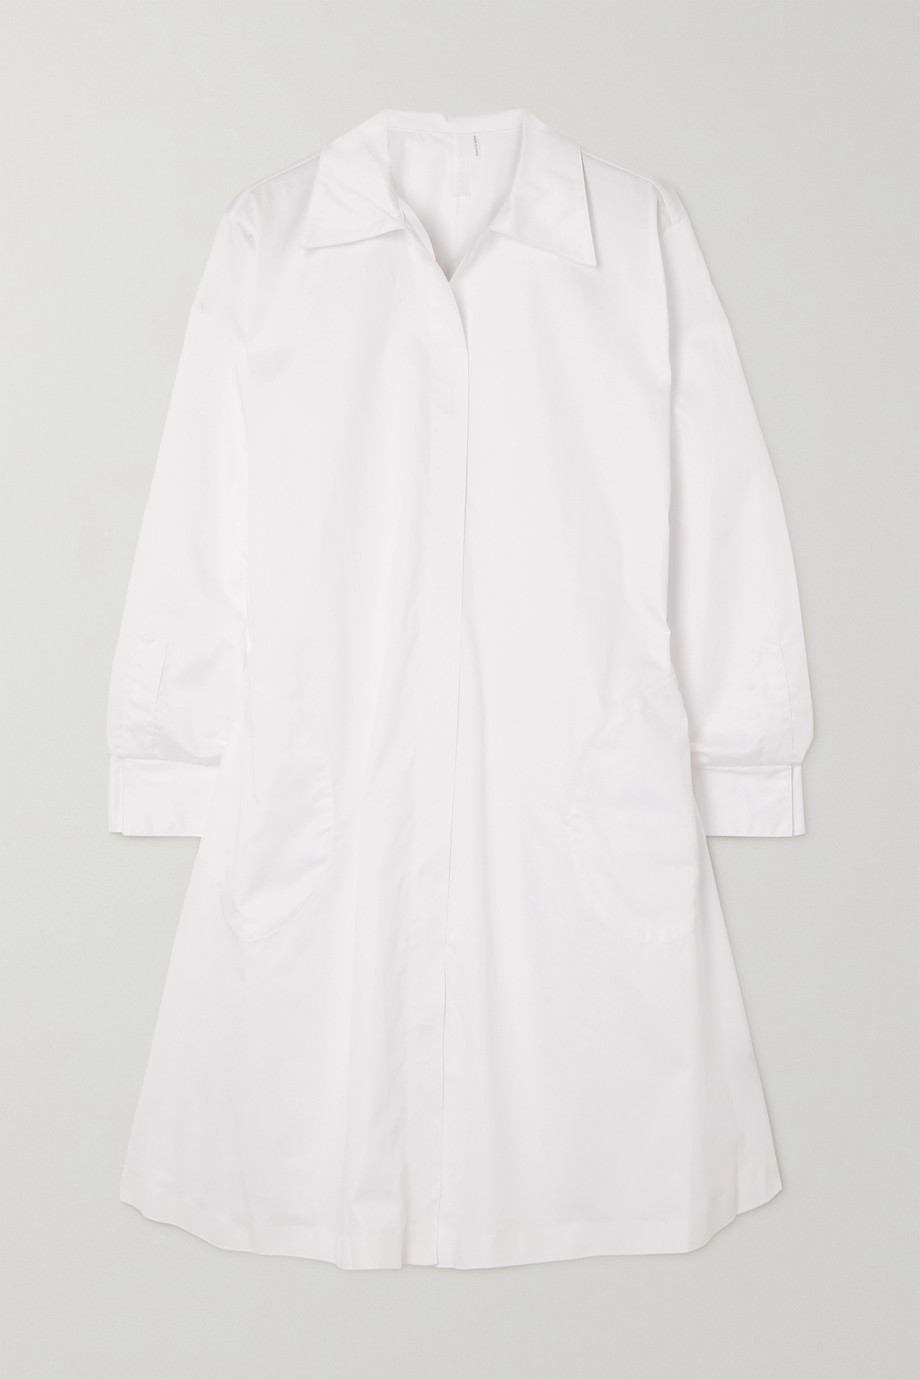 Norma Kamali Belted cotton-poplin shirt dress